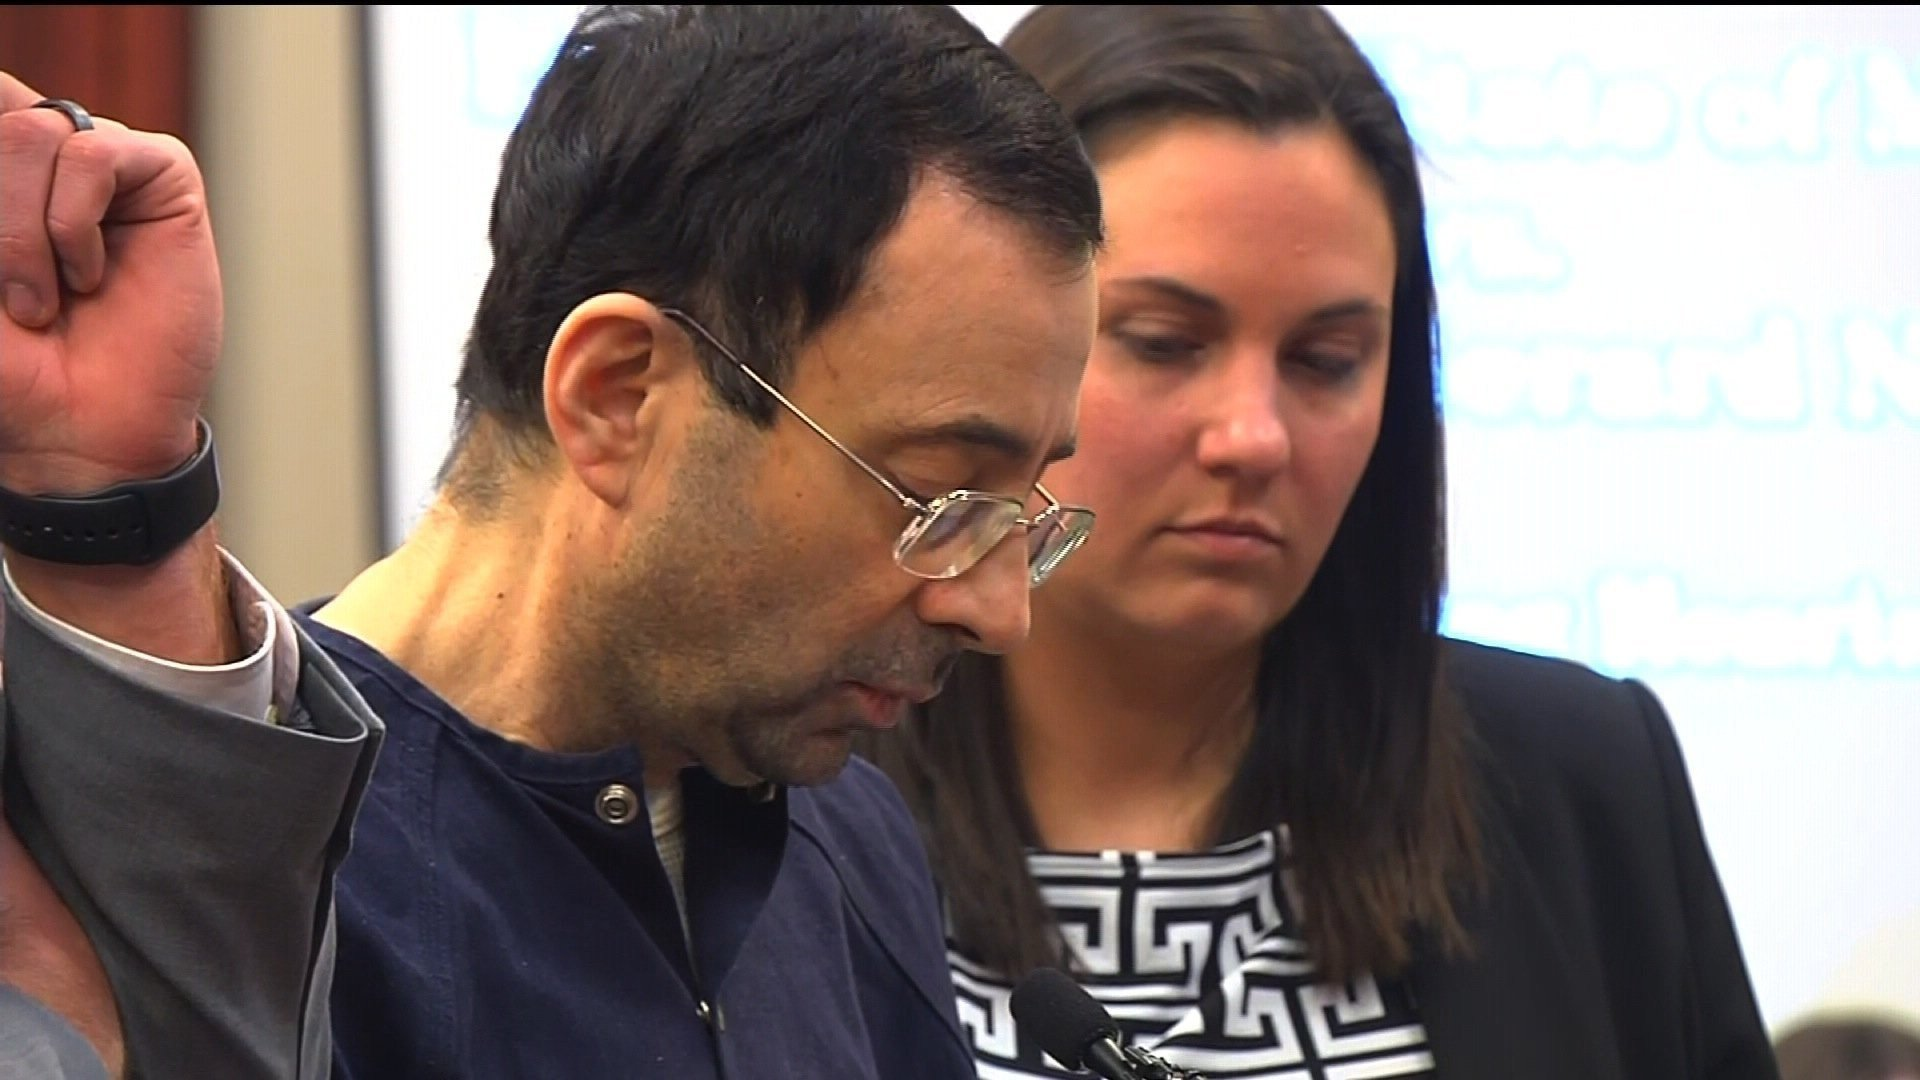 MI township to apologize for mishandling Nassar victim's report